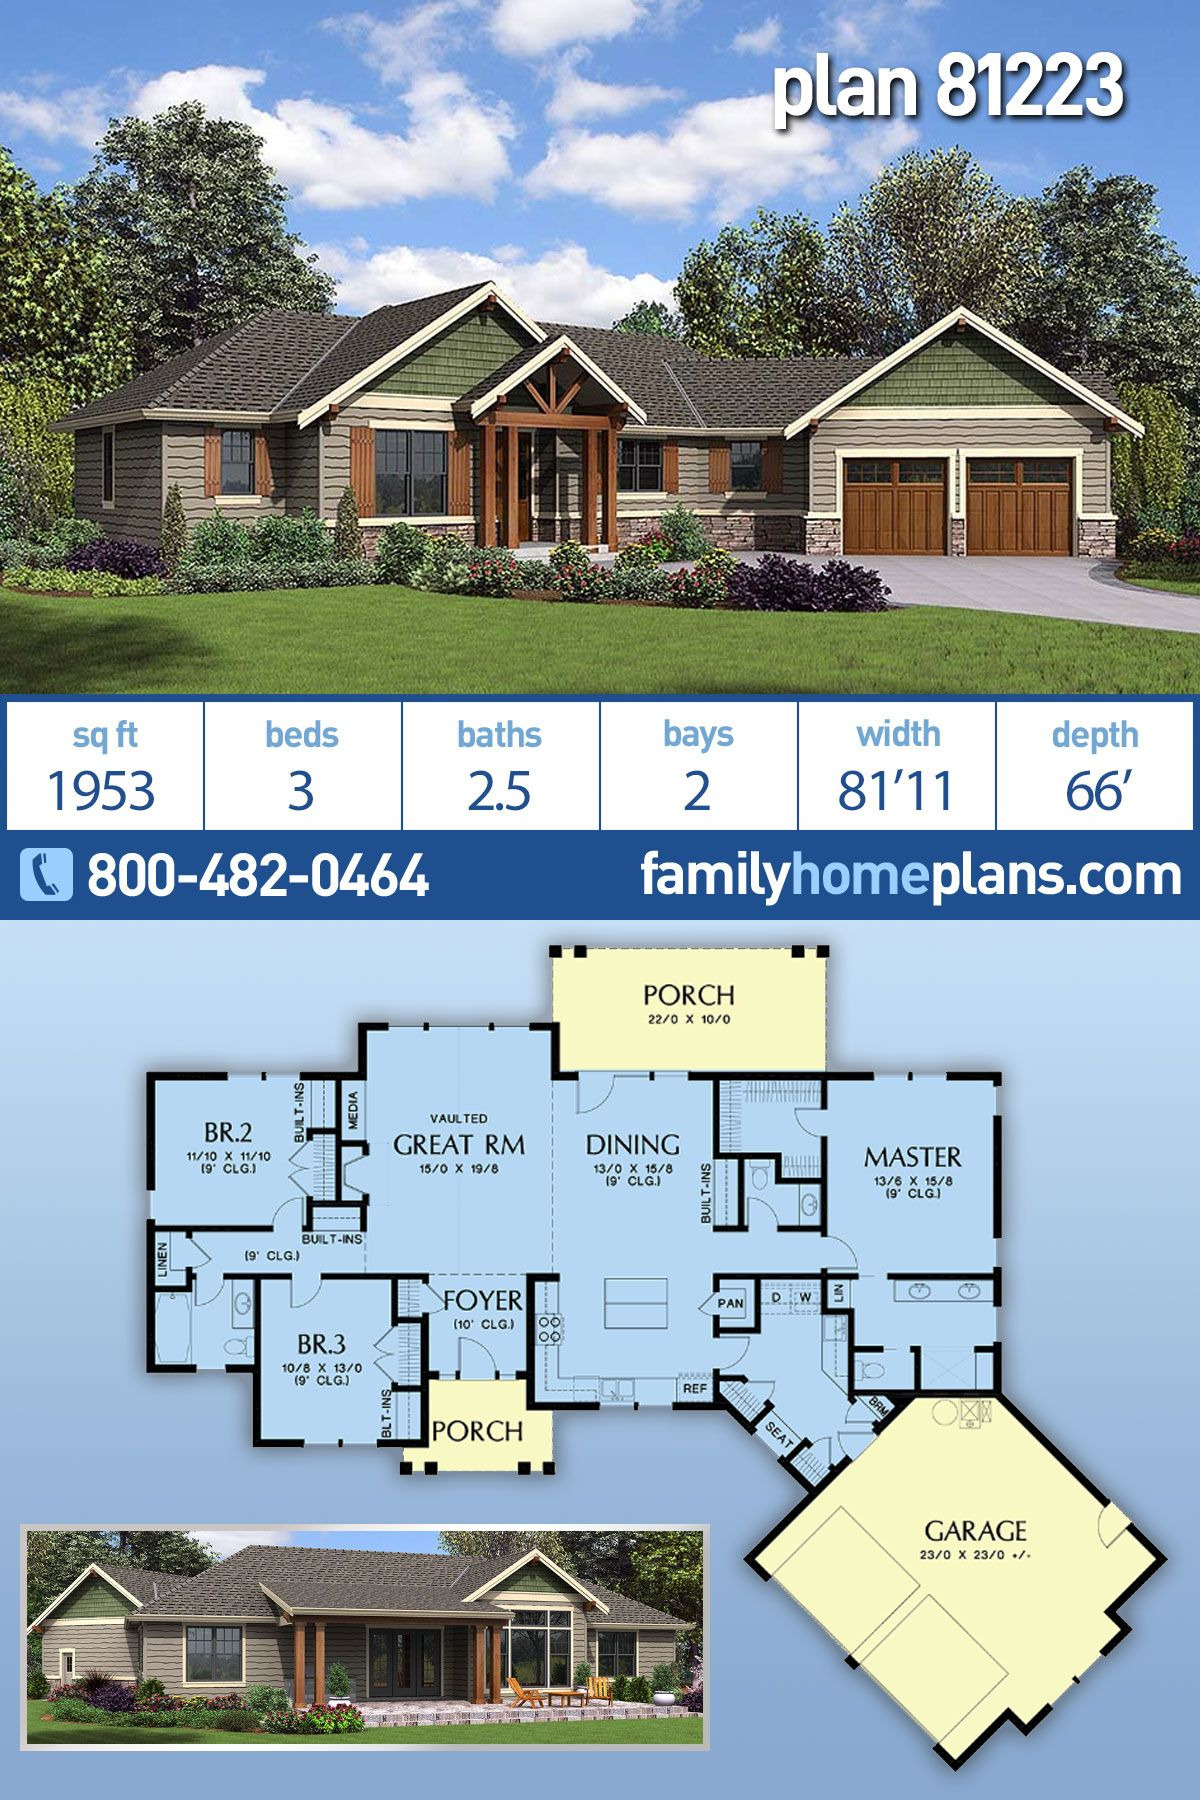 Ranch Style House Plans with Open Floor Plans New Ranch Style House Plan with 3 Bed 3 Bath 2 Car